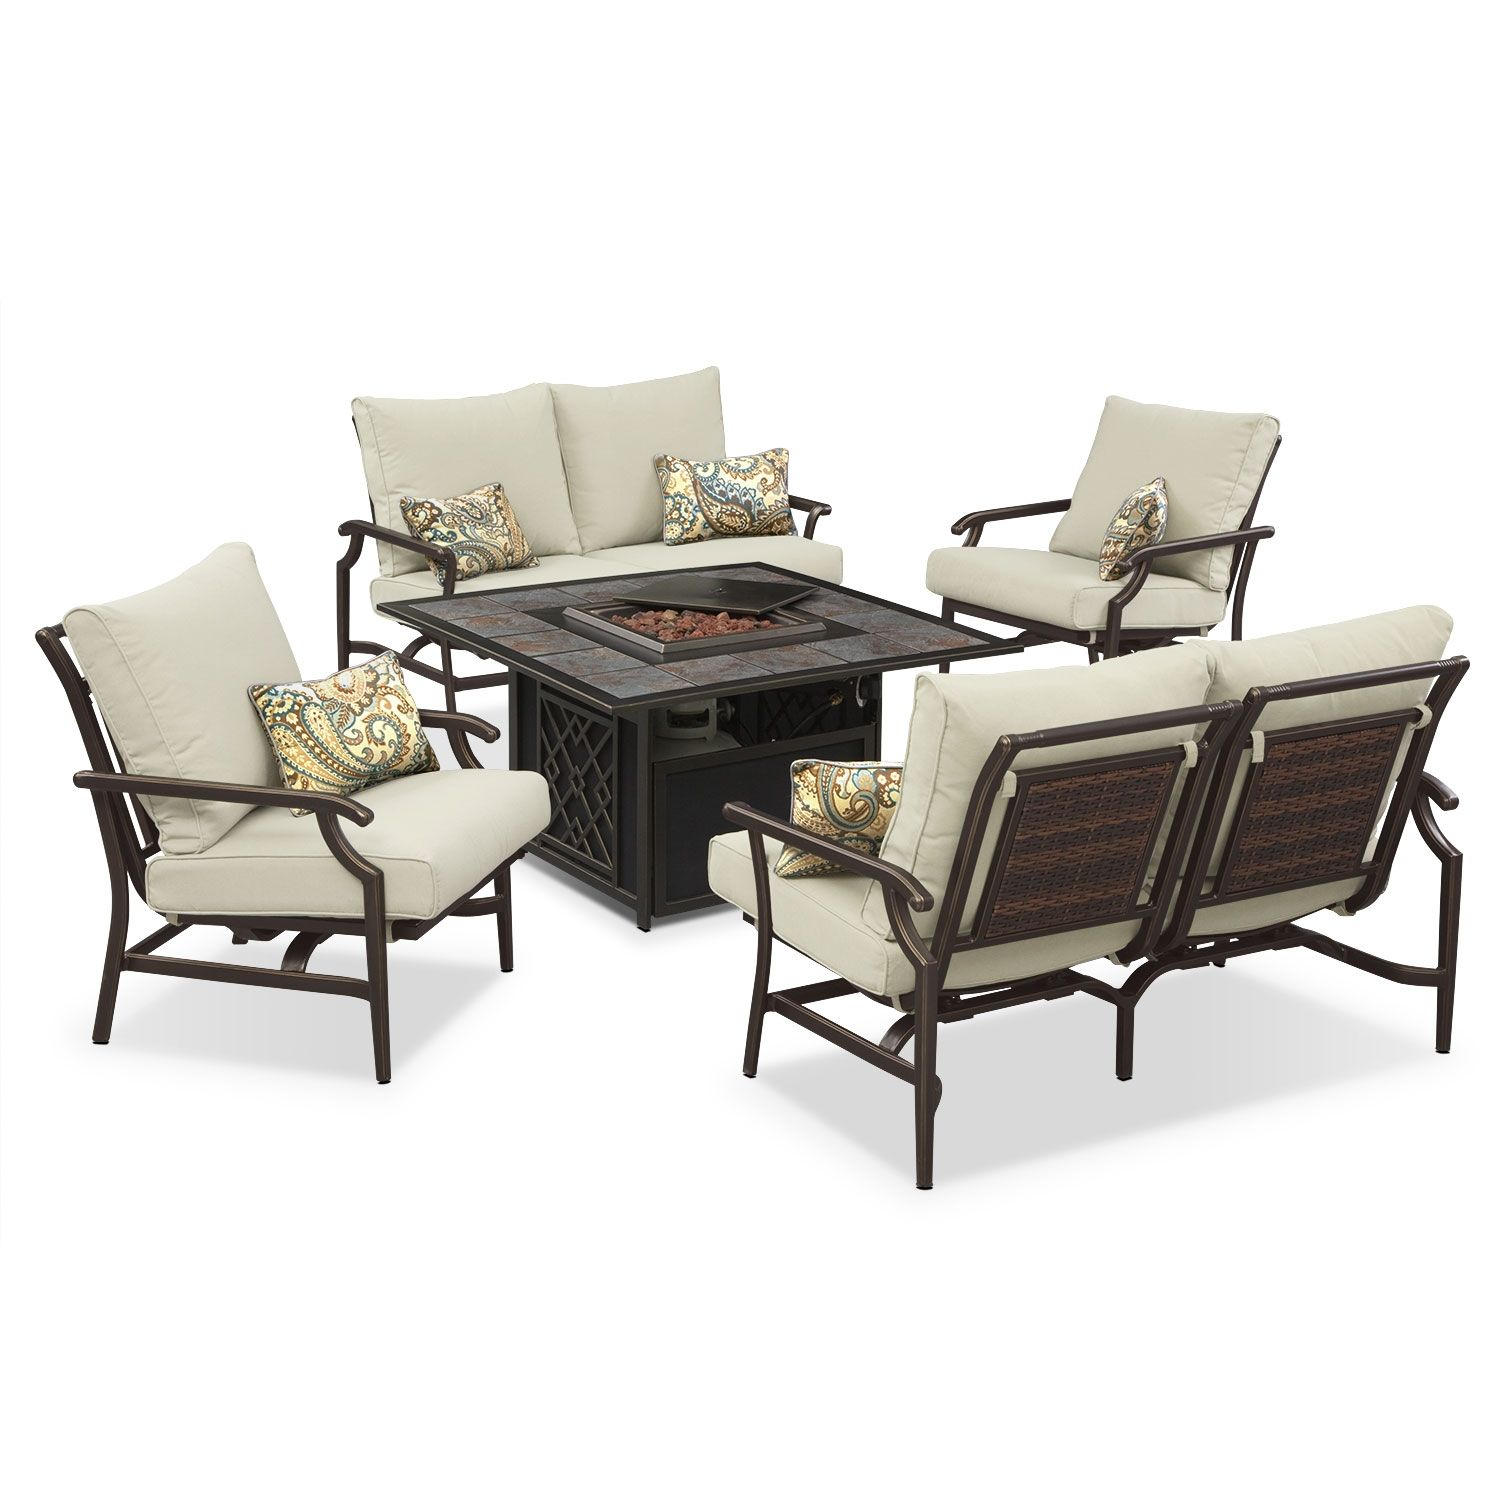 A Complete Firepit Set For Your Patio Can T Get Any Better Than This Outdoor Furniture Hat Beautiful Outdoor Furniture Outdoor Living Room Outdoor Living